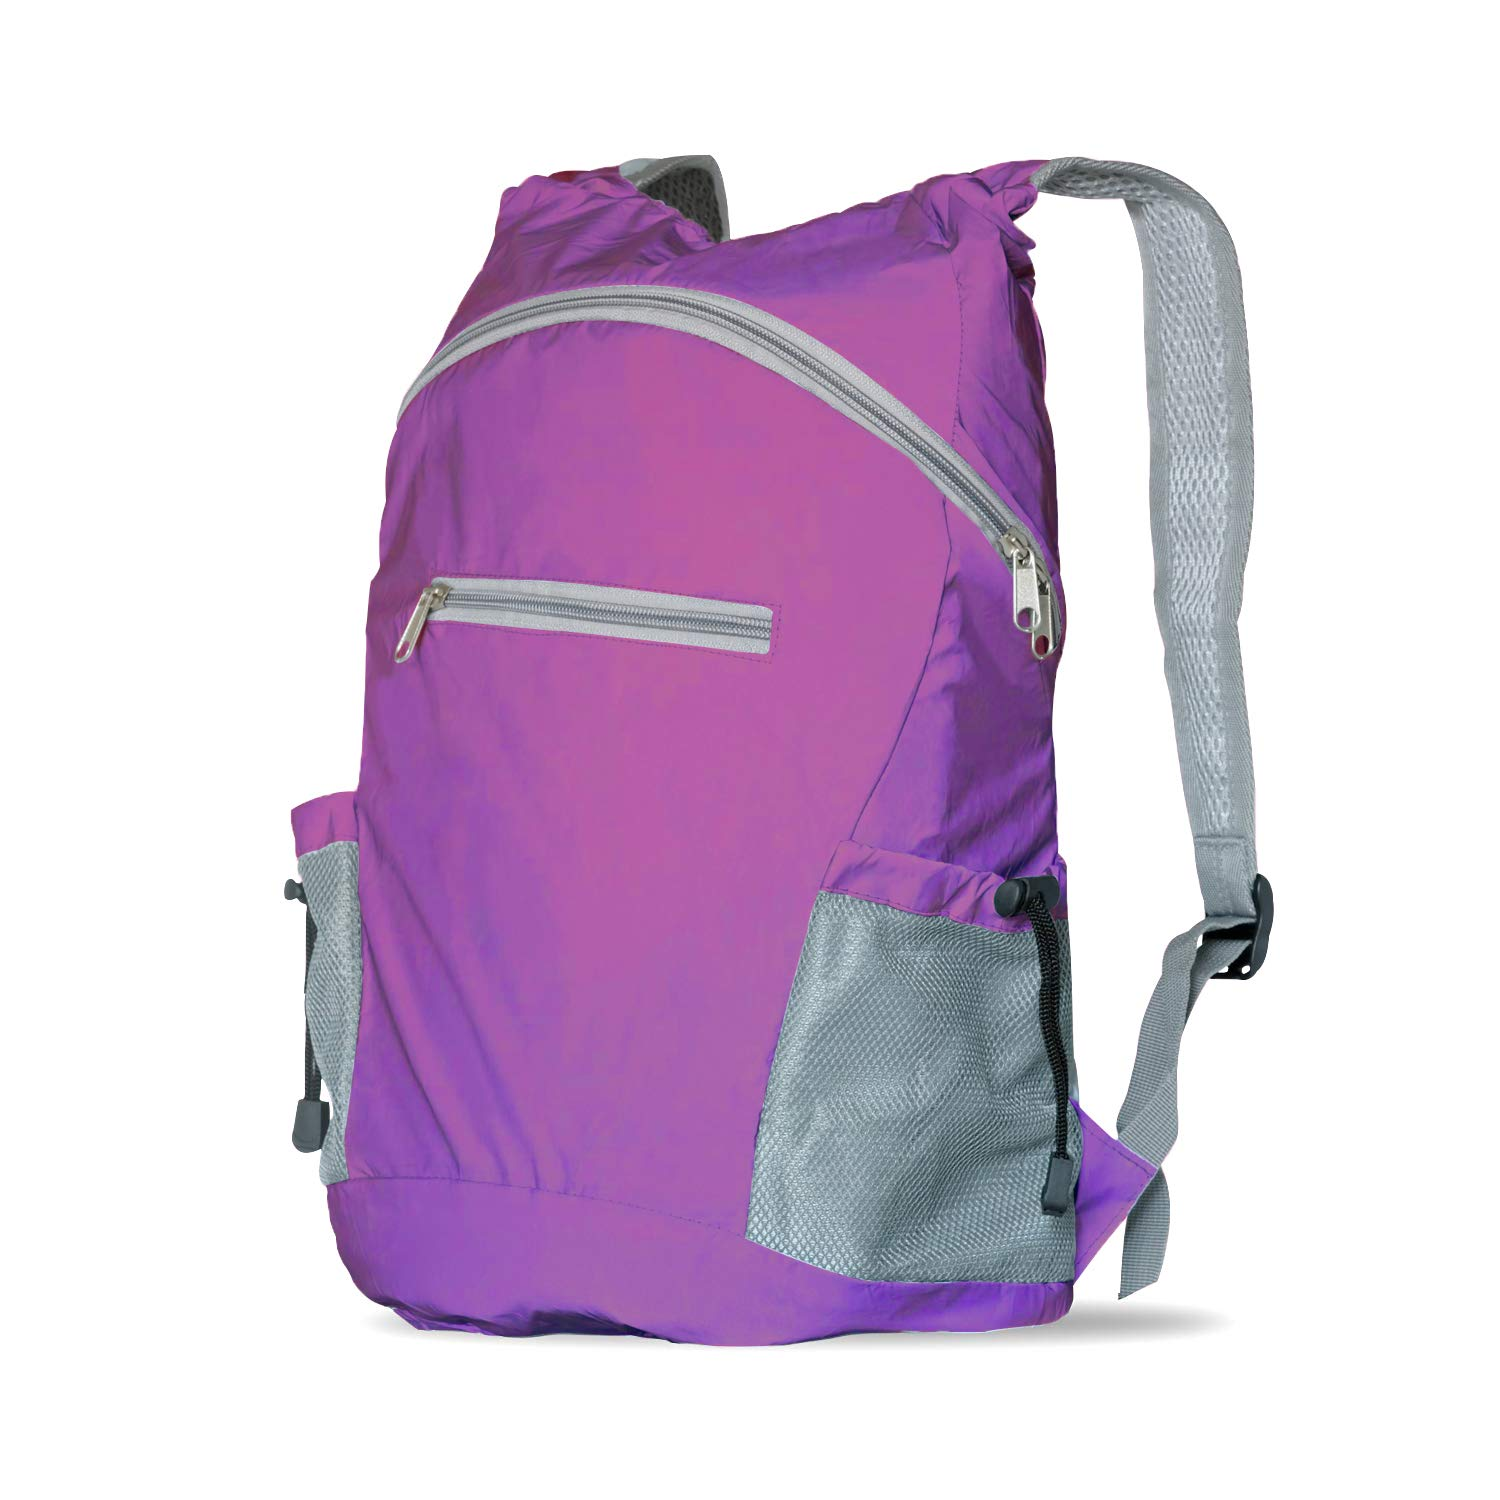 Cycling backpack - high visibility dc229e2ca06f7